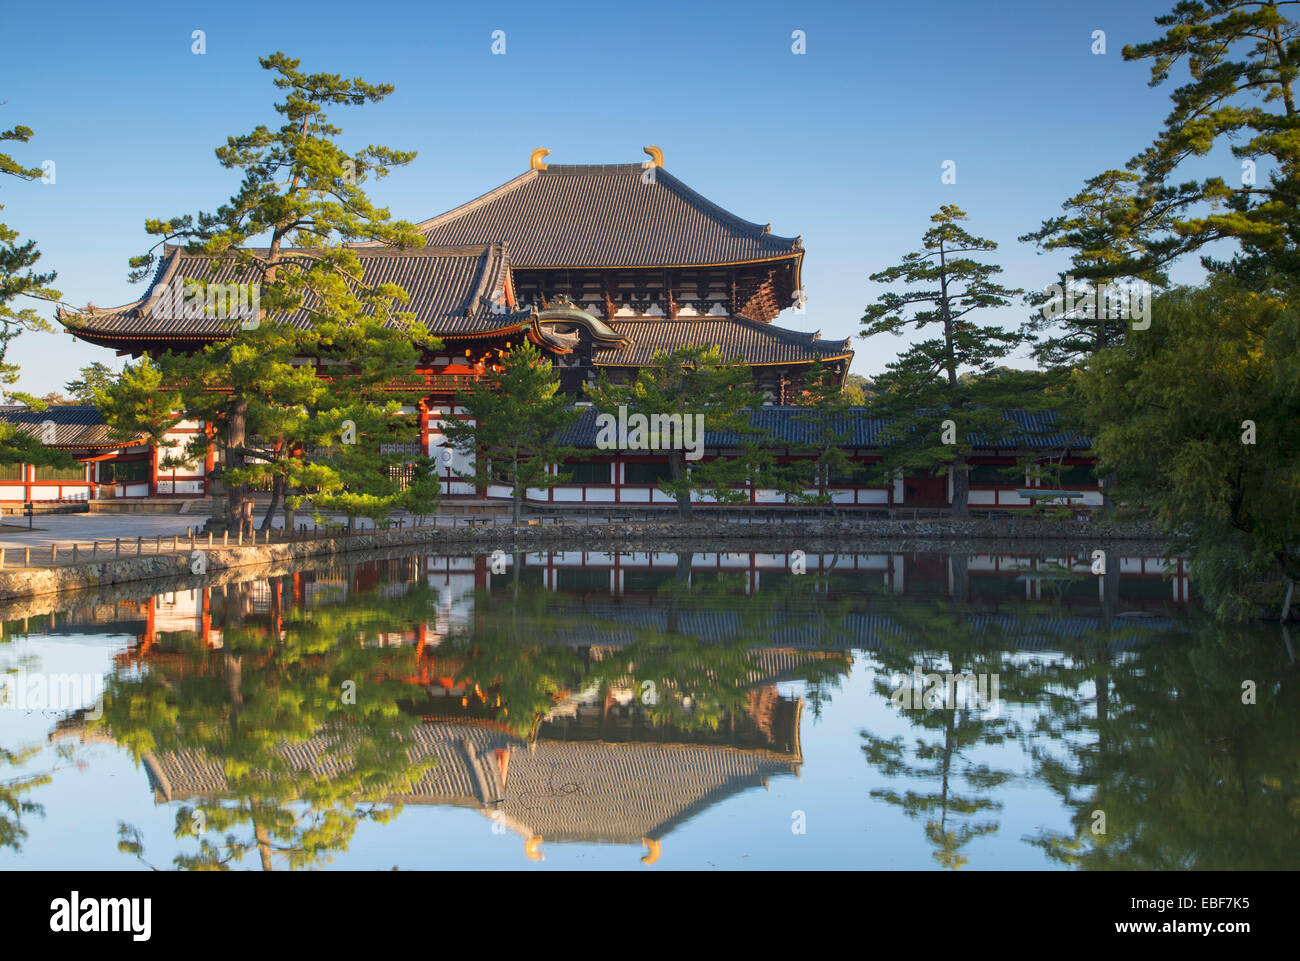 Todaiji Temple (UNESCO World Heritage Site) at dawn, Nara, Kansai, Japan - Stock Image